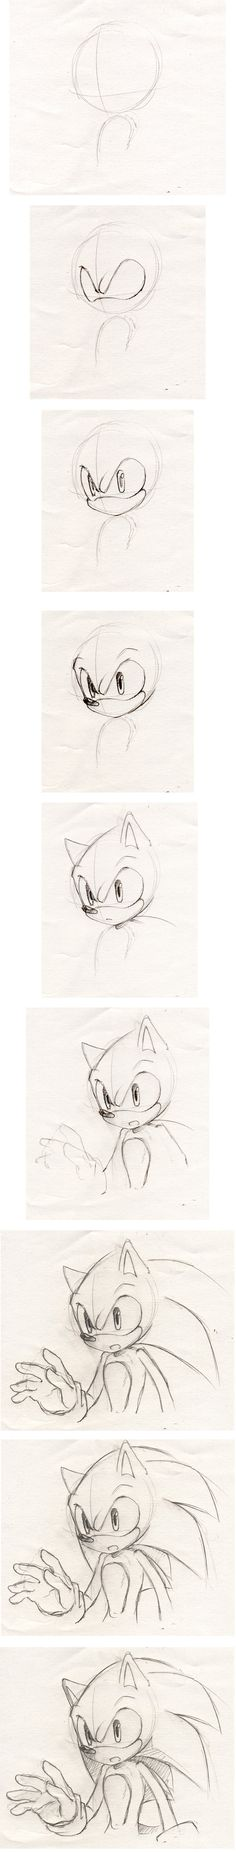 Sonic the hedgehog Tutorials favourites by Spectrum-Dragonoid on DeviantArt